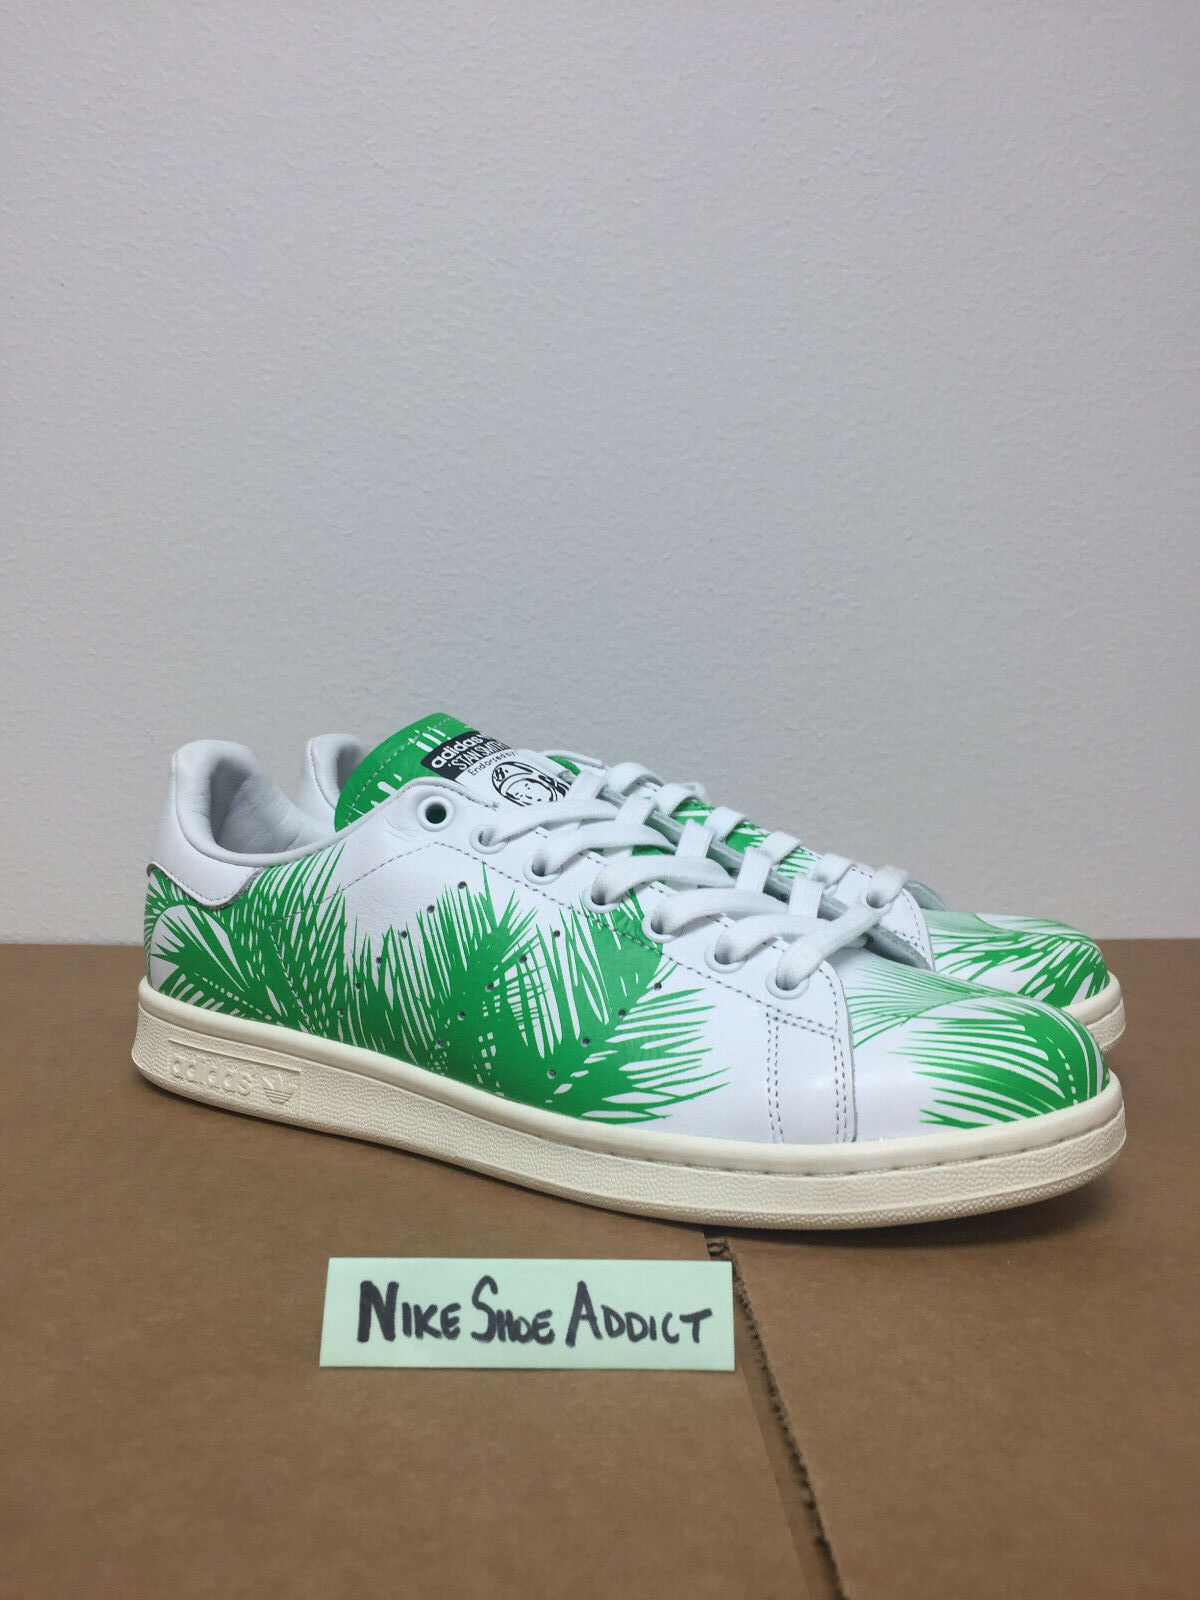 40d6ca905 Adidas Stan Smith PW Pharrell Williams BBC White Green Palm Trees S82071  nmd durable modeling